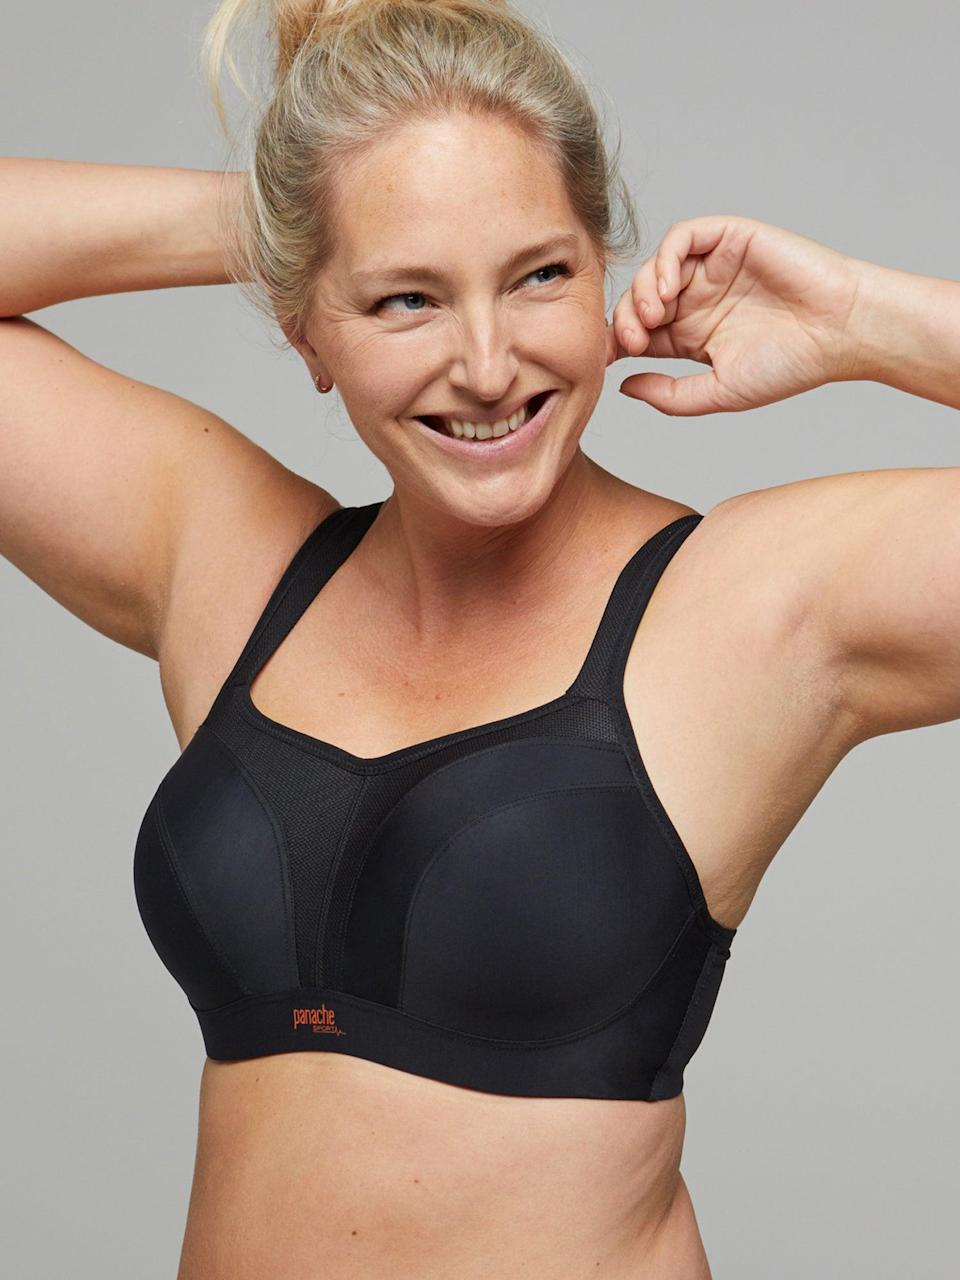 """<h2>Panache Sports Wired Bra</h2> <br>We've <a href=""""https://www.refinery29.com/en-us/best-high-impact-sports-bra"""" rel=""""nofollow noopener"""" target=""""_blank"""" data-ylk=""""slk:raved about this bra before"""" class=""""link rapid-noclick-resp"""">raved about this bra before</a>. It has an underwire, and it comes in sizes from B to J. We'll let a comment on that story speak for itself: """"I was hoping to see the Panache bra here, it's the only bra I could find with enough support for over an H cup. Plus it's convertible!!! I ended up buying their High Impact line in a few different colors 'cause they're cute as hell too.""""<br><br><strong>Panache</strong> Sports, $, available at <a href=""""https://go.skimresources.com/?id=30283X879131&url=https%3A%2F%2Fwww.panache-lingerie.com%2Fus%2Fshop%2Fproduct%2Fsports-full-cup%3Fcolour%3D013"""" rel=""""nofollow noopener"""" target=""""_blank"""" data-ylk=""""slk:Amazon"""" class=""""link rapid-noclick-resp"""">Amazon</a><br>"""